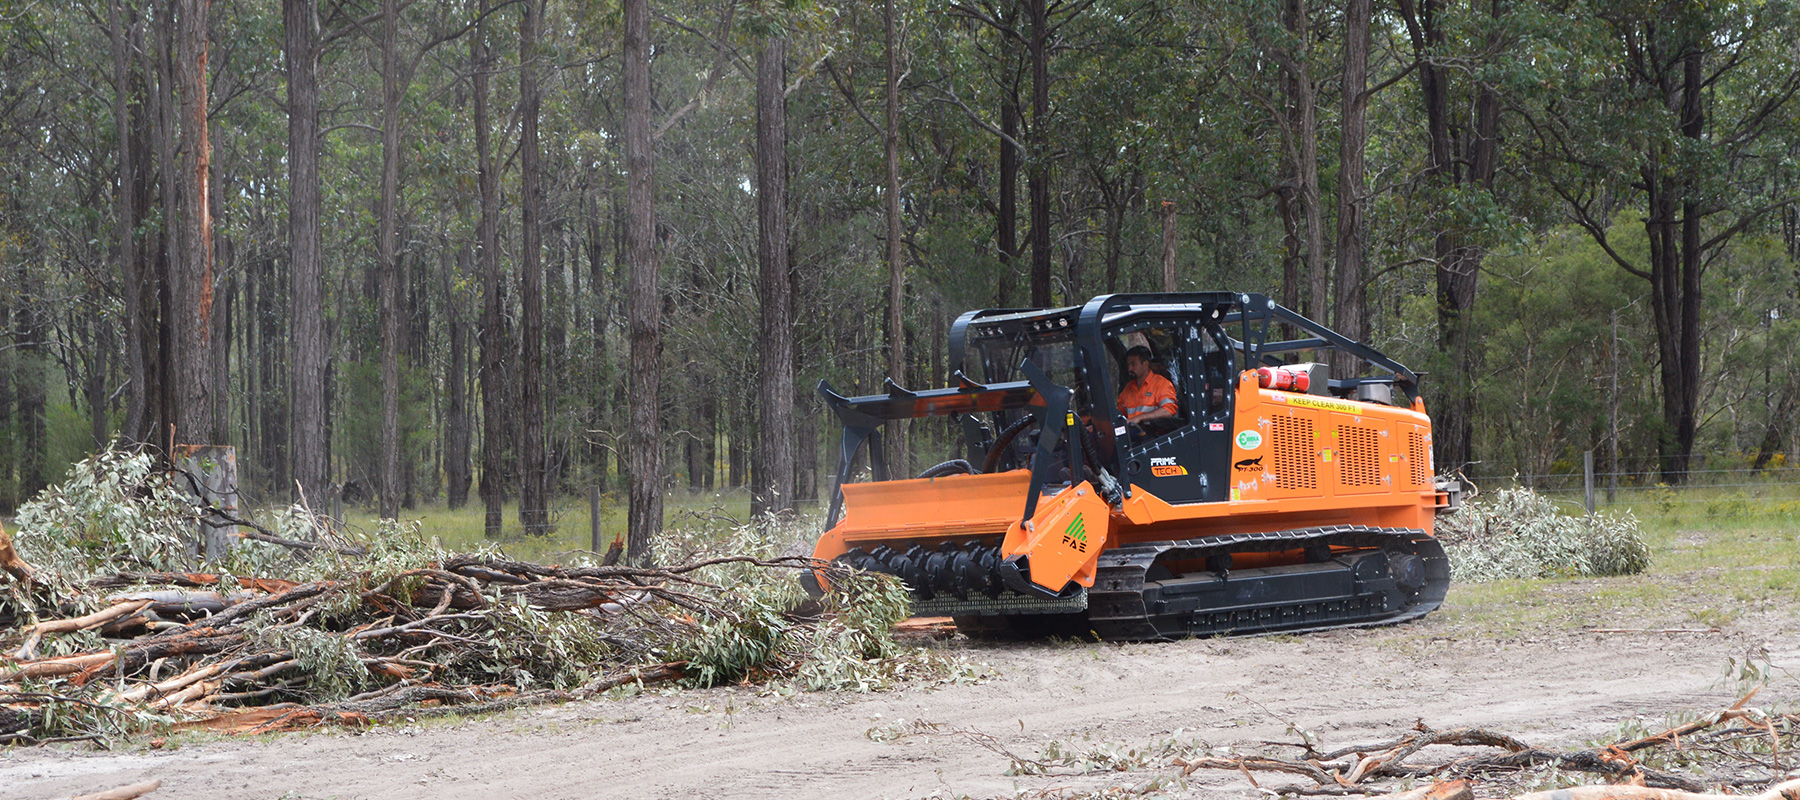 acf-penrith-sydney-forestry-products-machinery